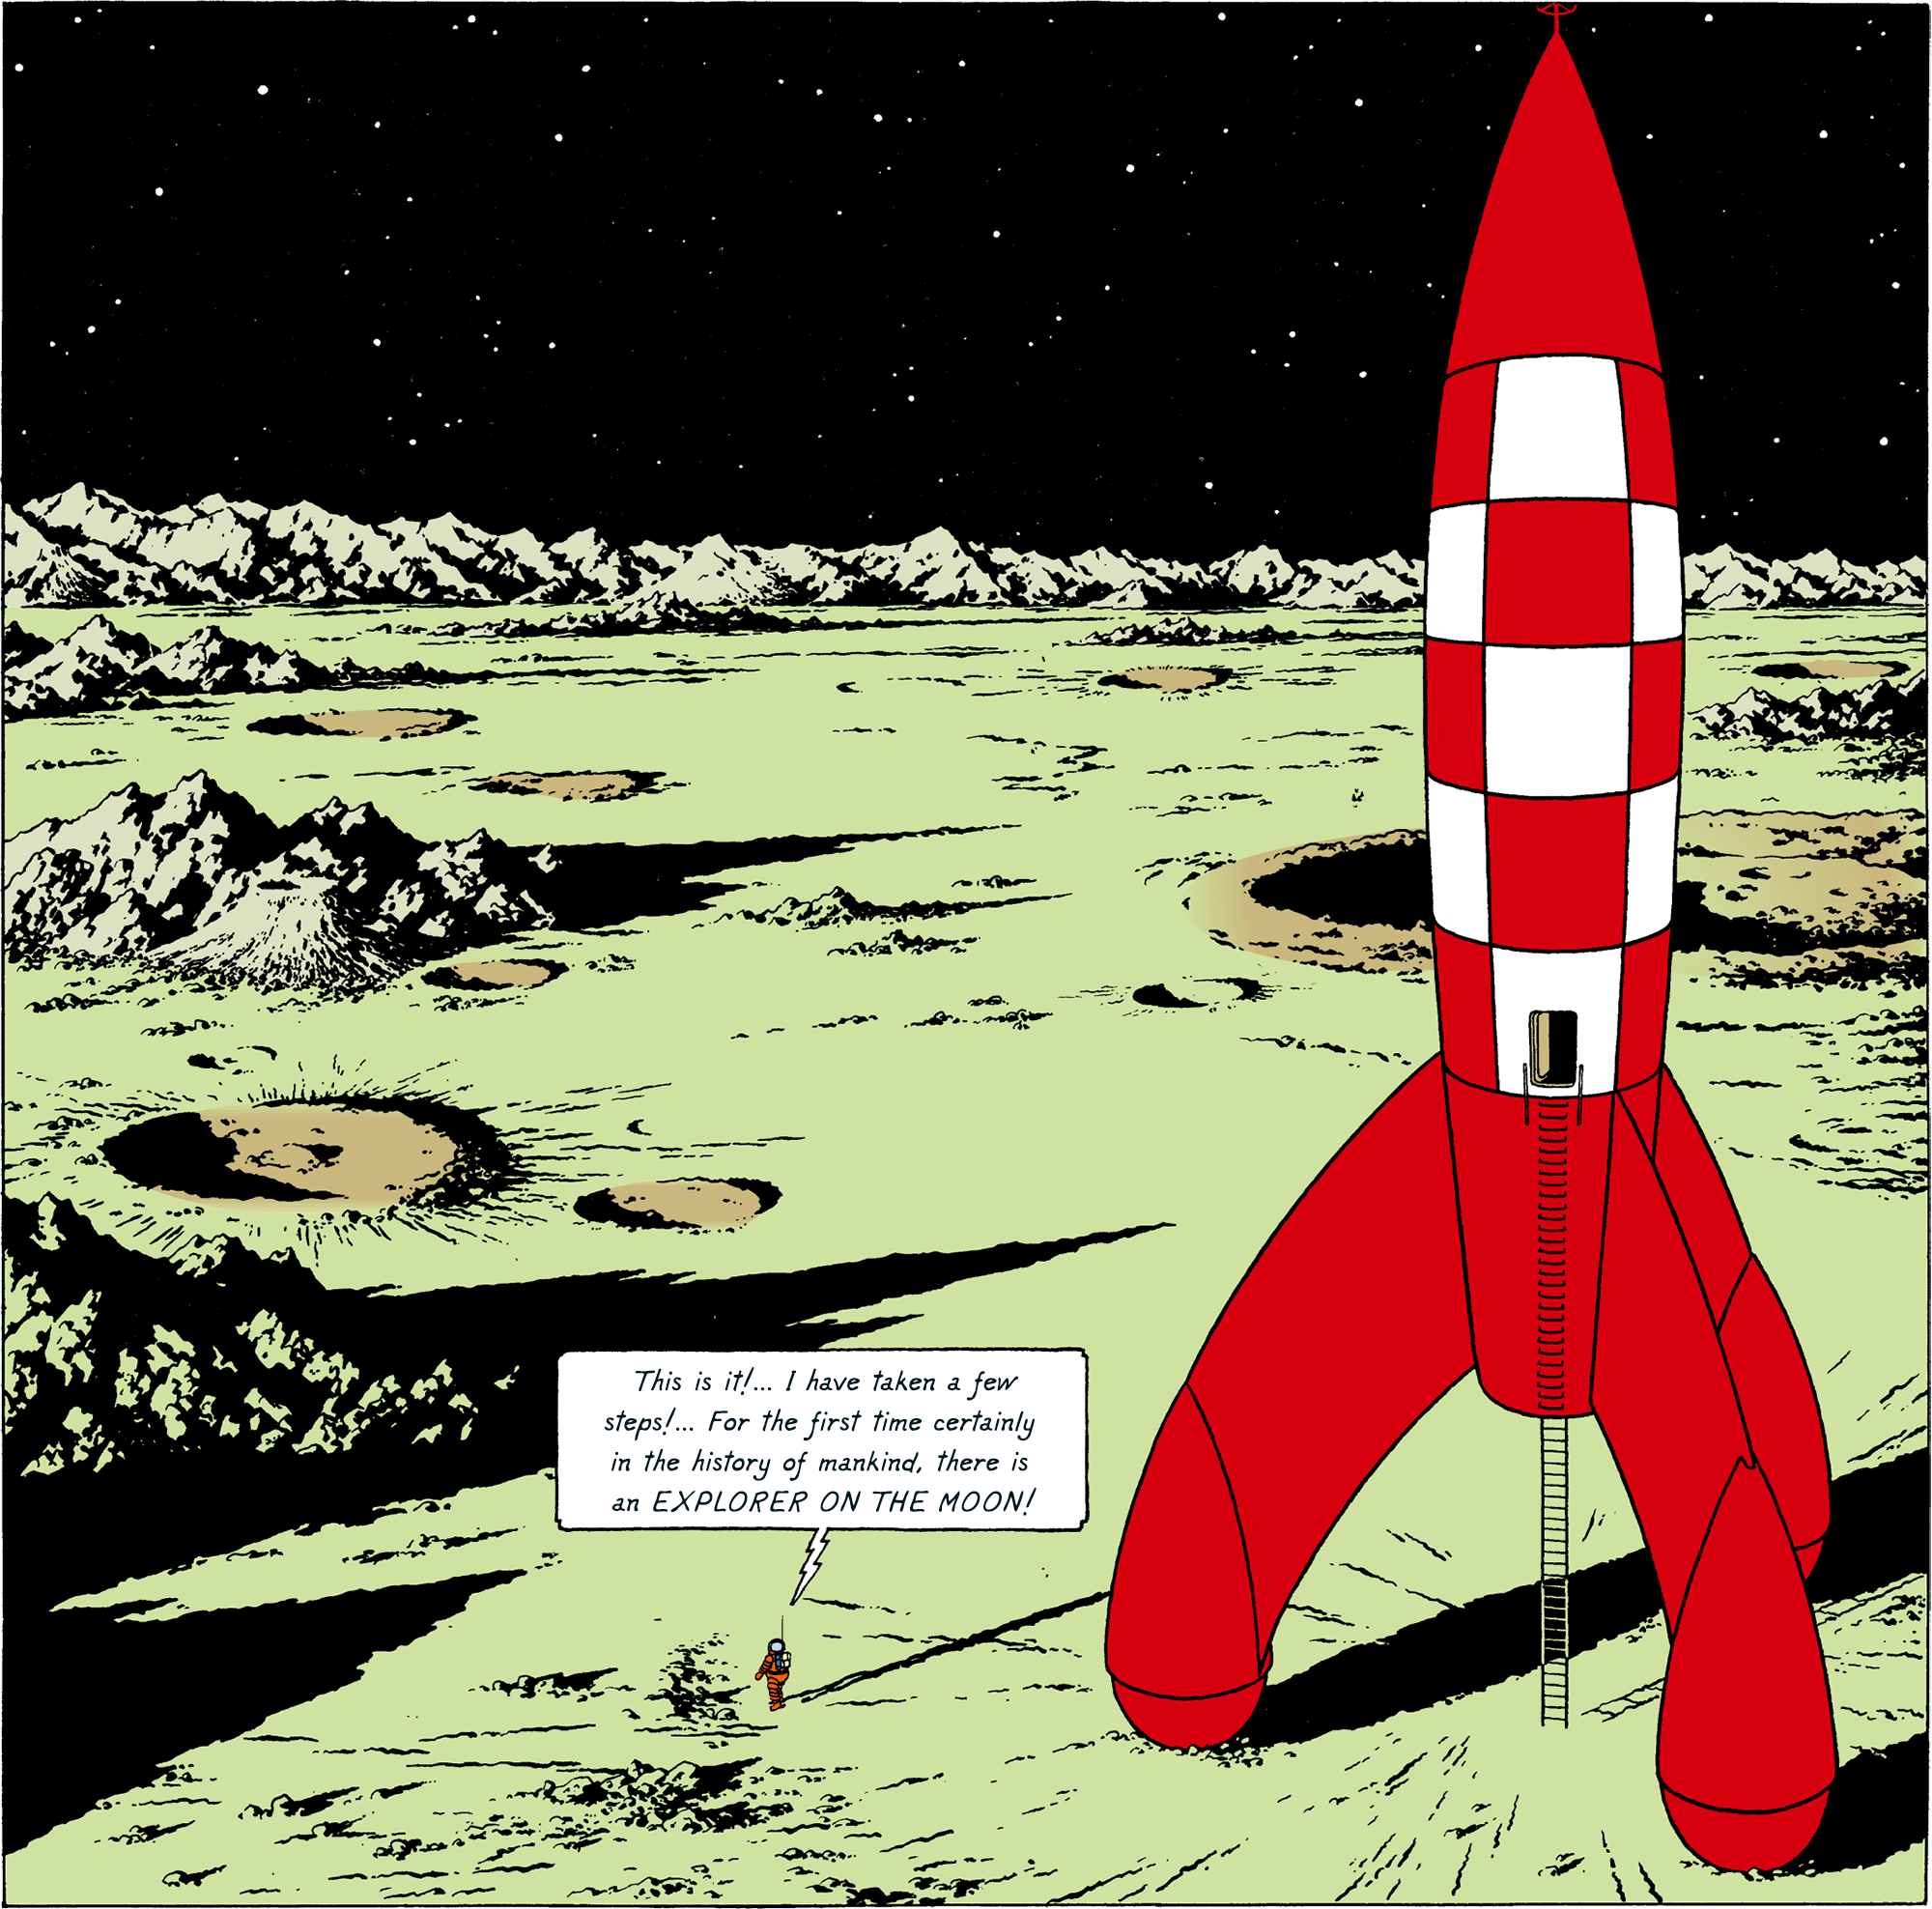 Explorers on the Moon - Tintin is walking on the Moon